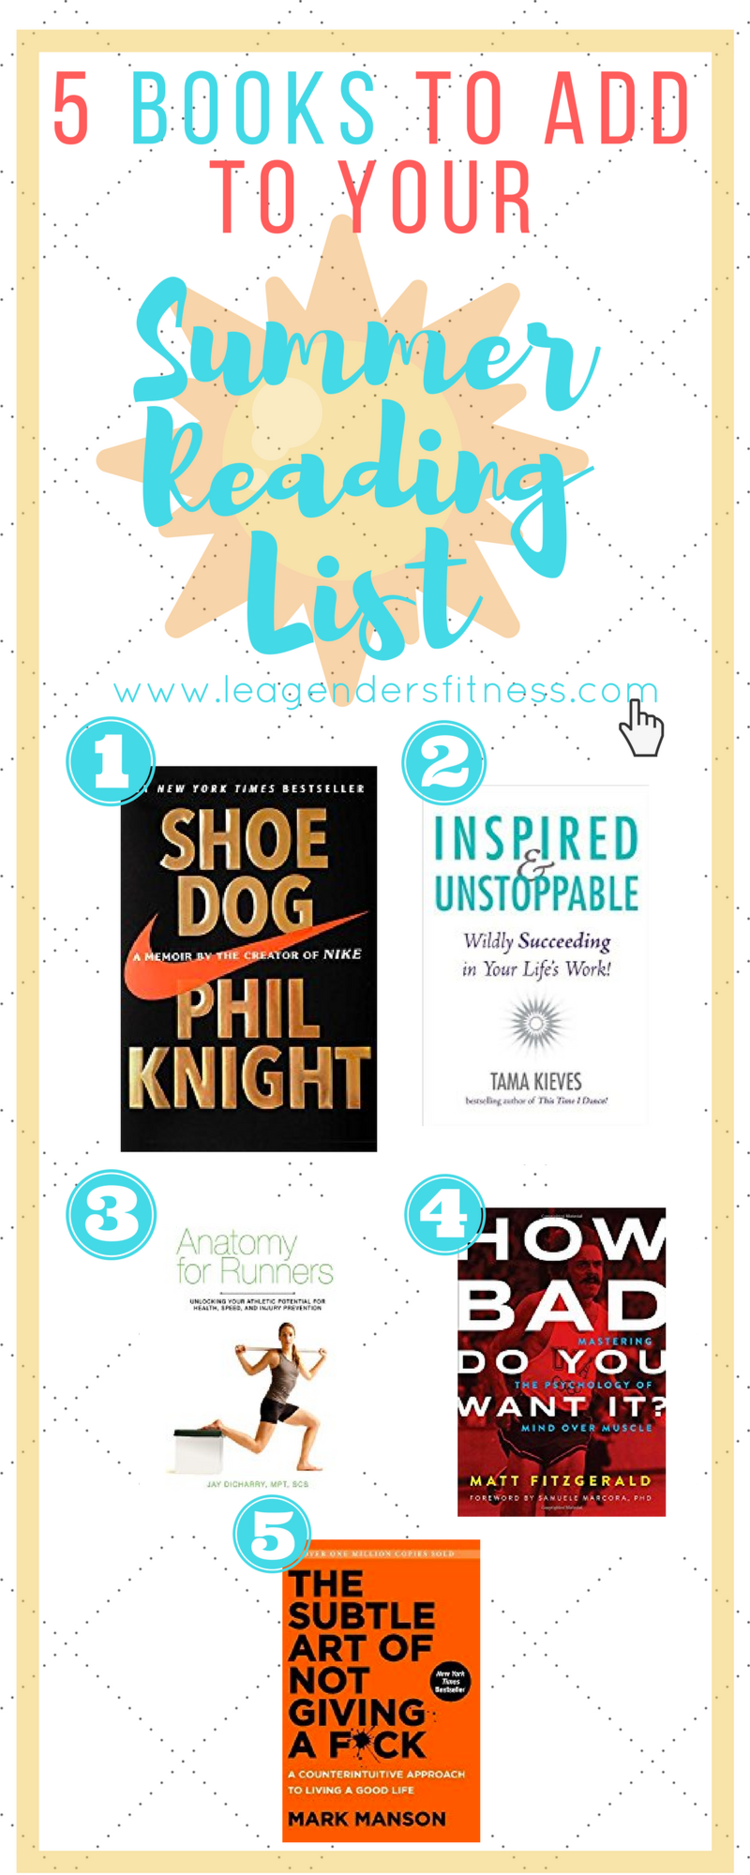 5 Books to Add to Your Summer Reading List — Lea Genders Fitness